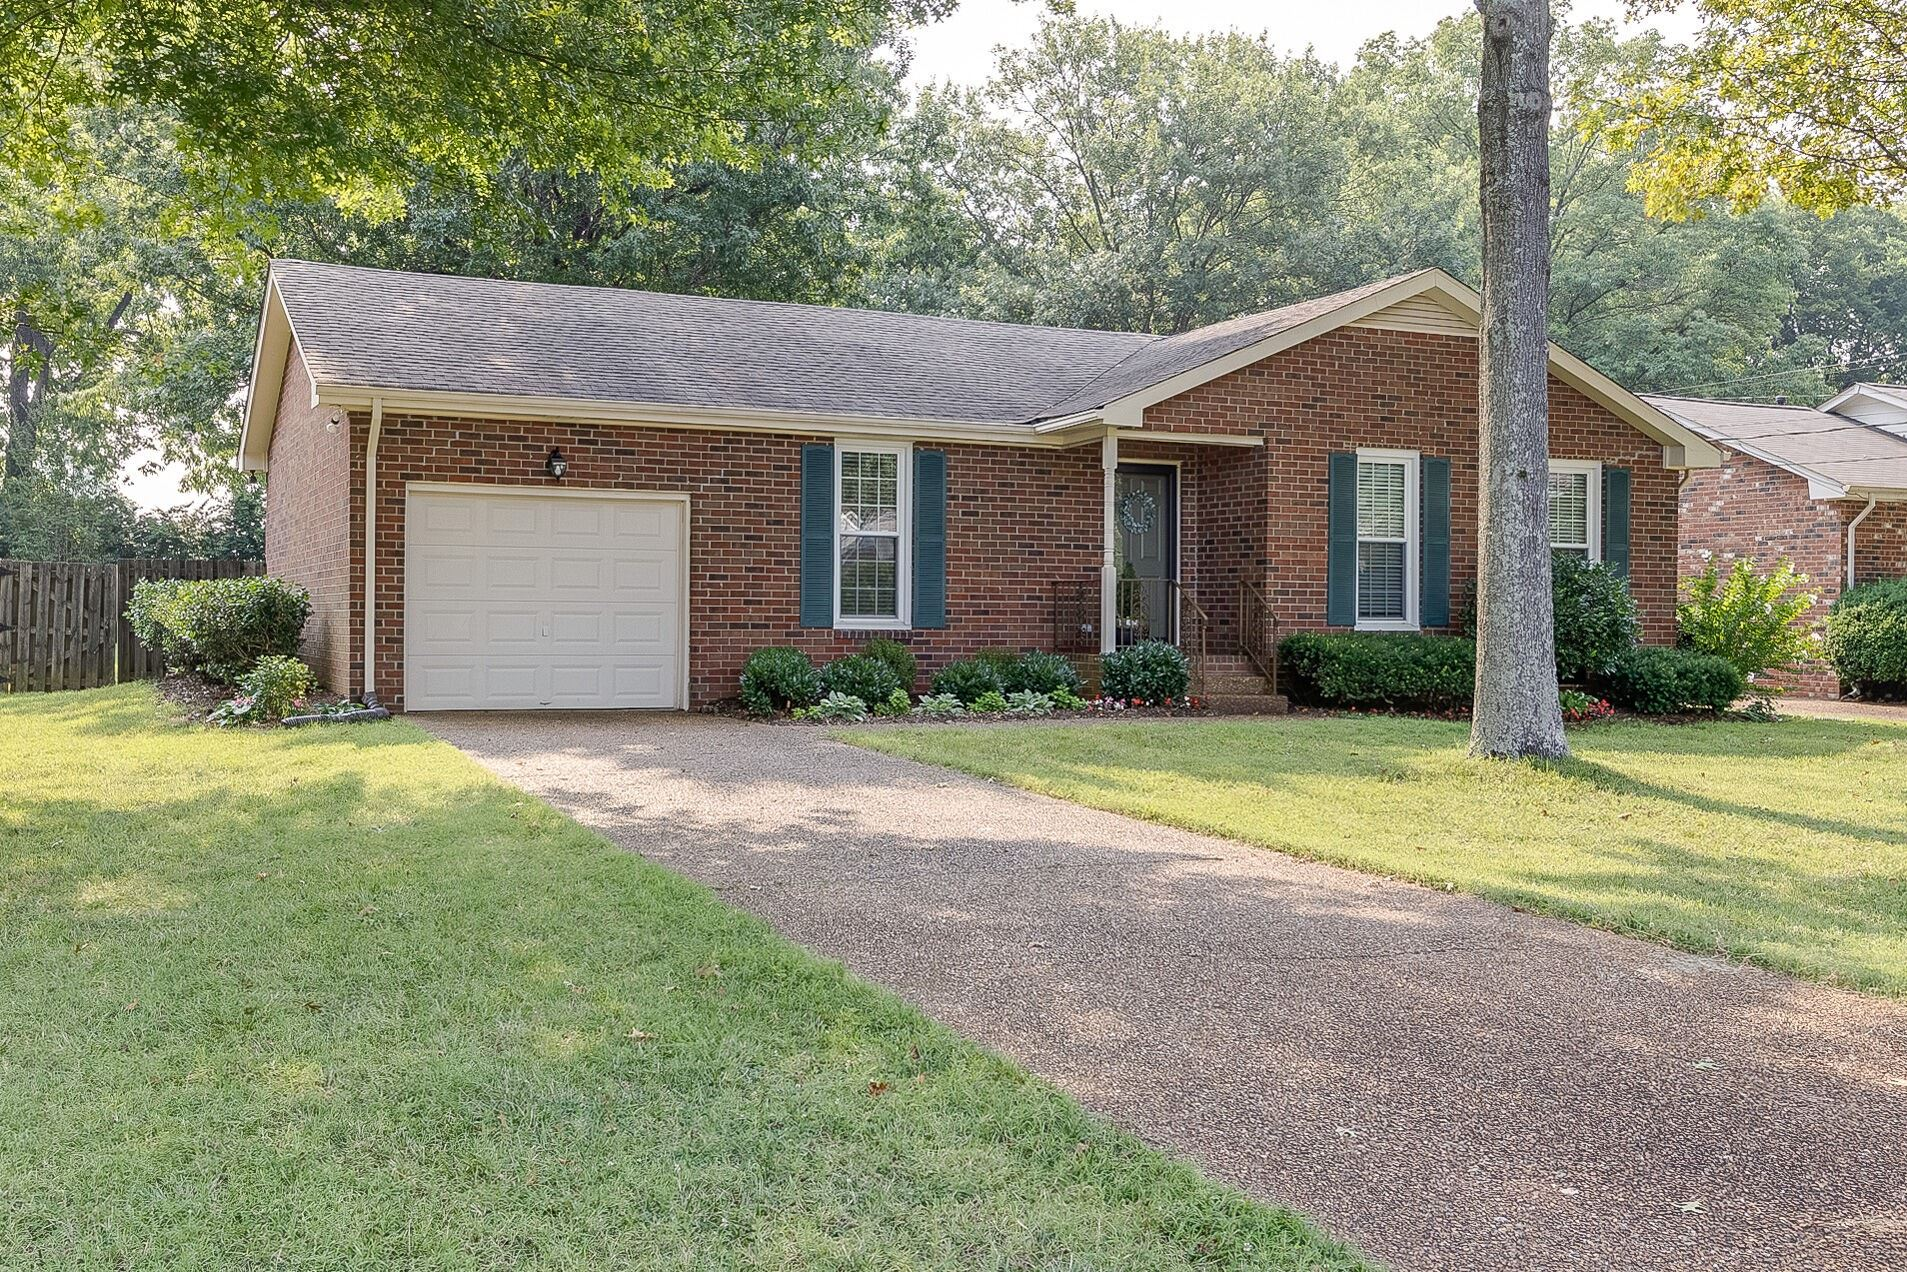 Photo of 5640 Oakes Dr, Brentwood, TN 37027 (MLS # 2275989)